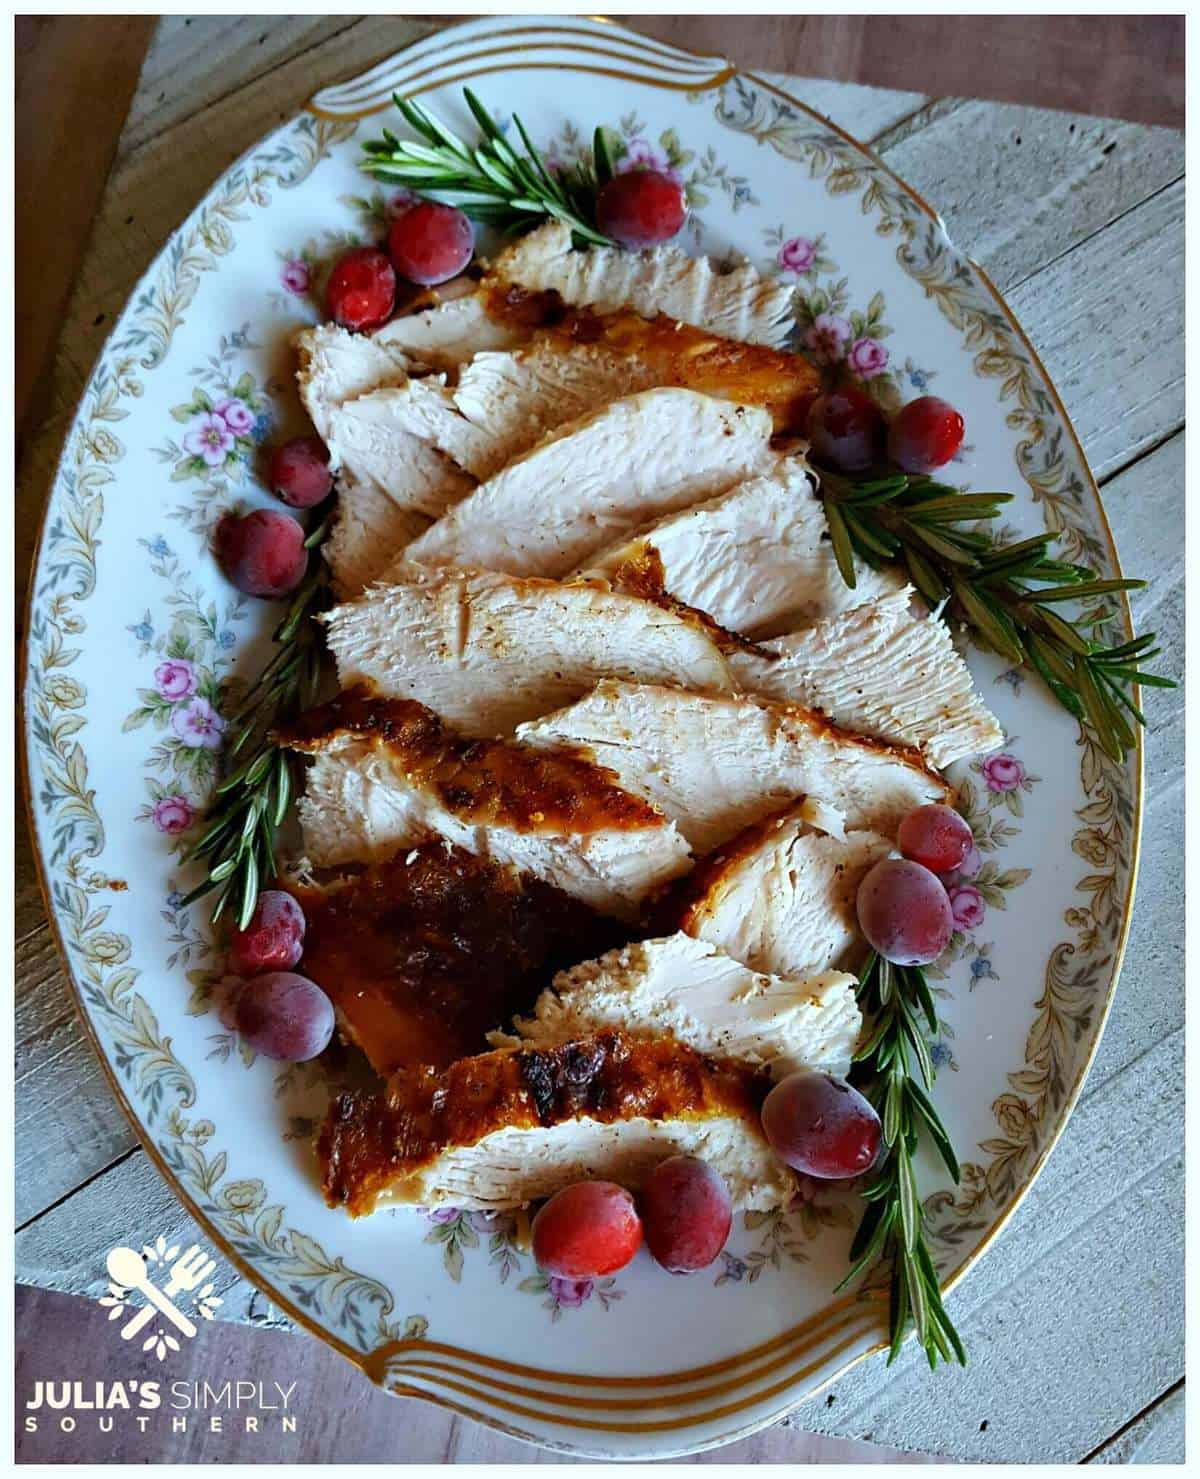 Sliced turkey breast on a plate with flowers.